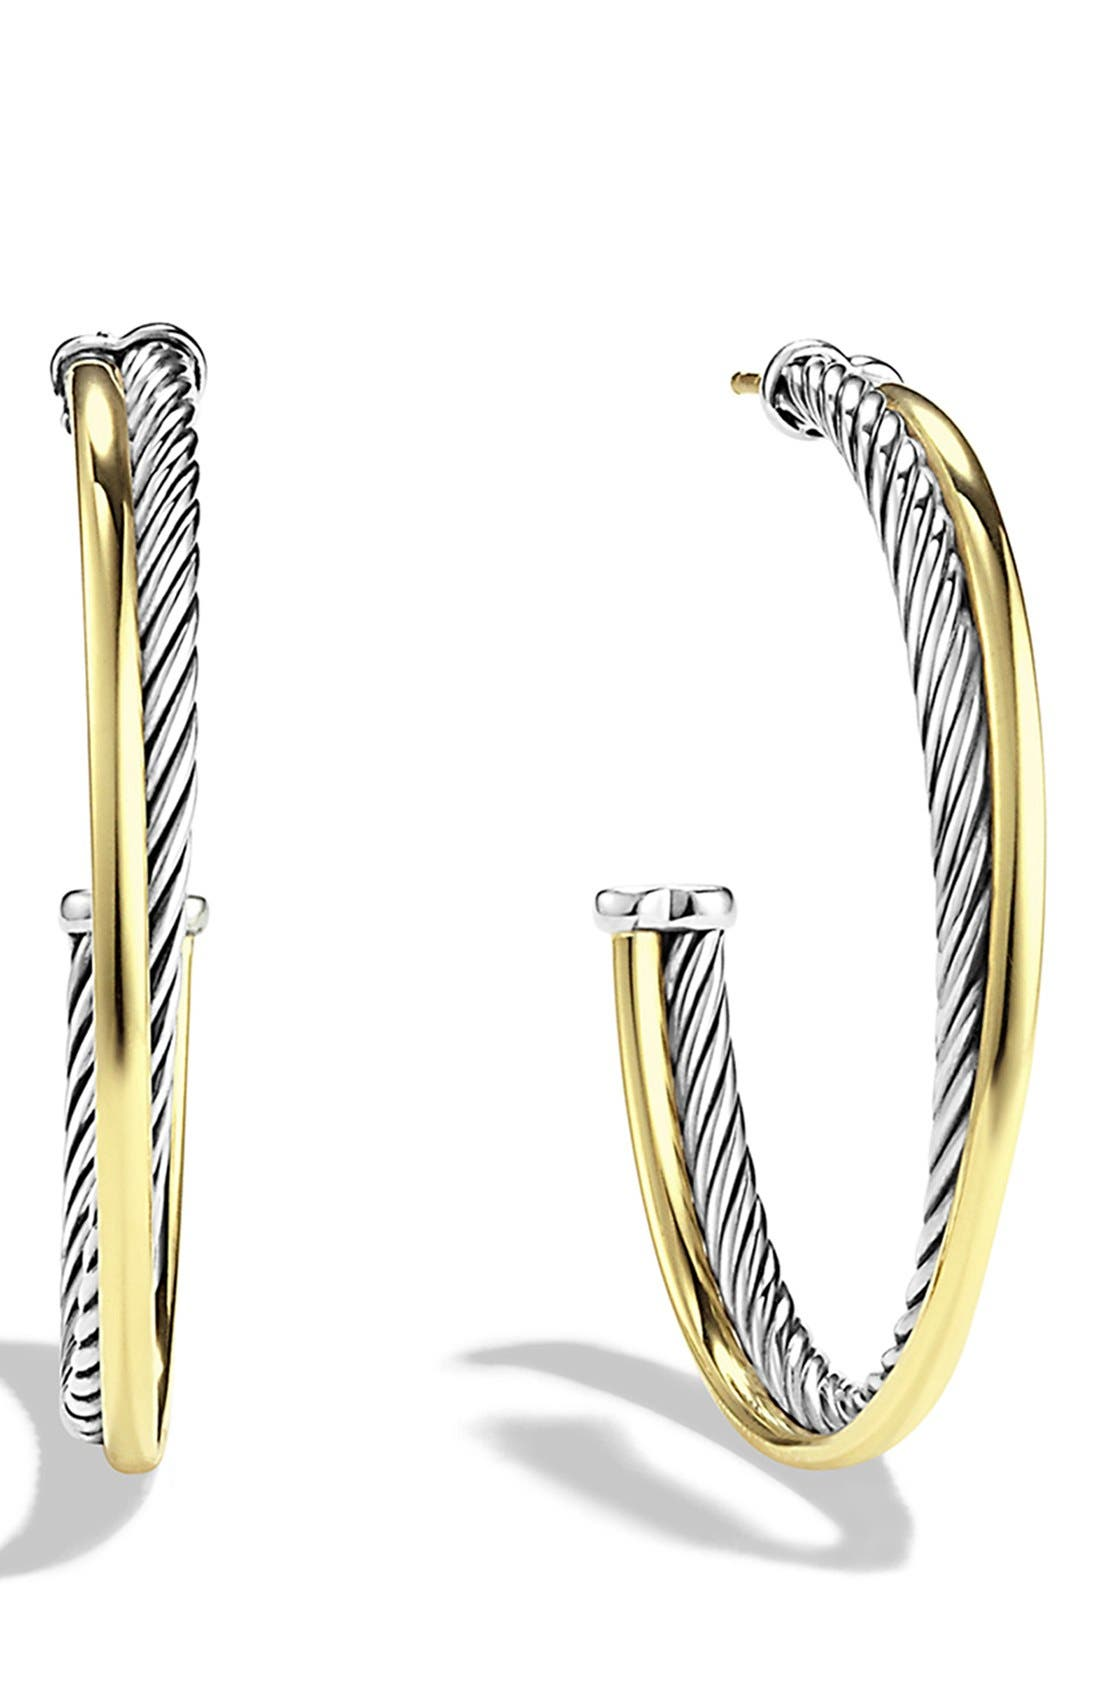 'Crossover' Extra-Large Hoop Earrings with Gold,                             Main thumbnail 1, color,                             TWO TONE